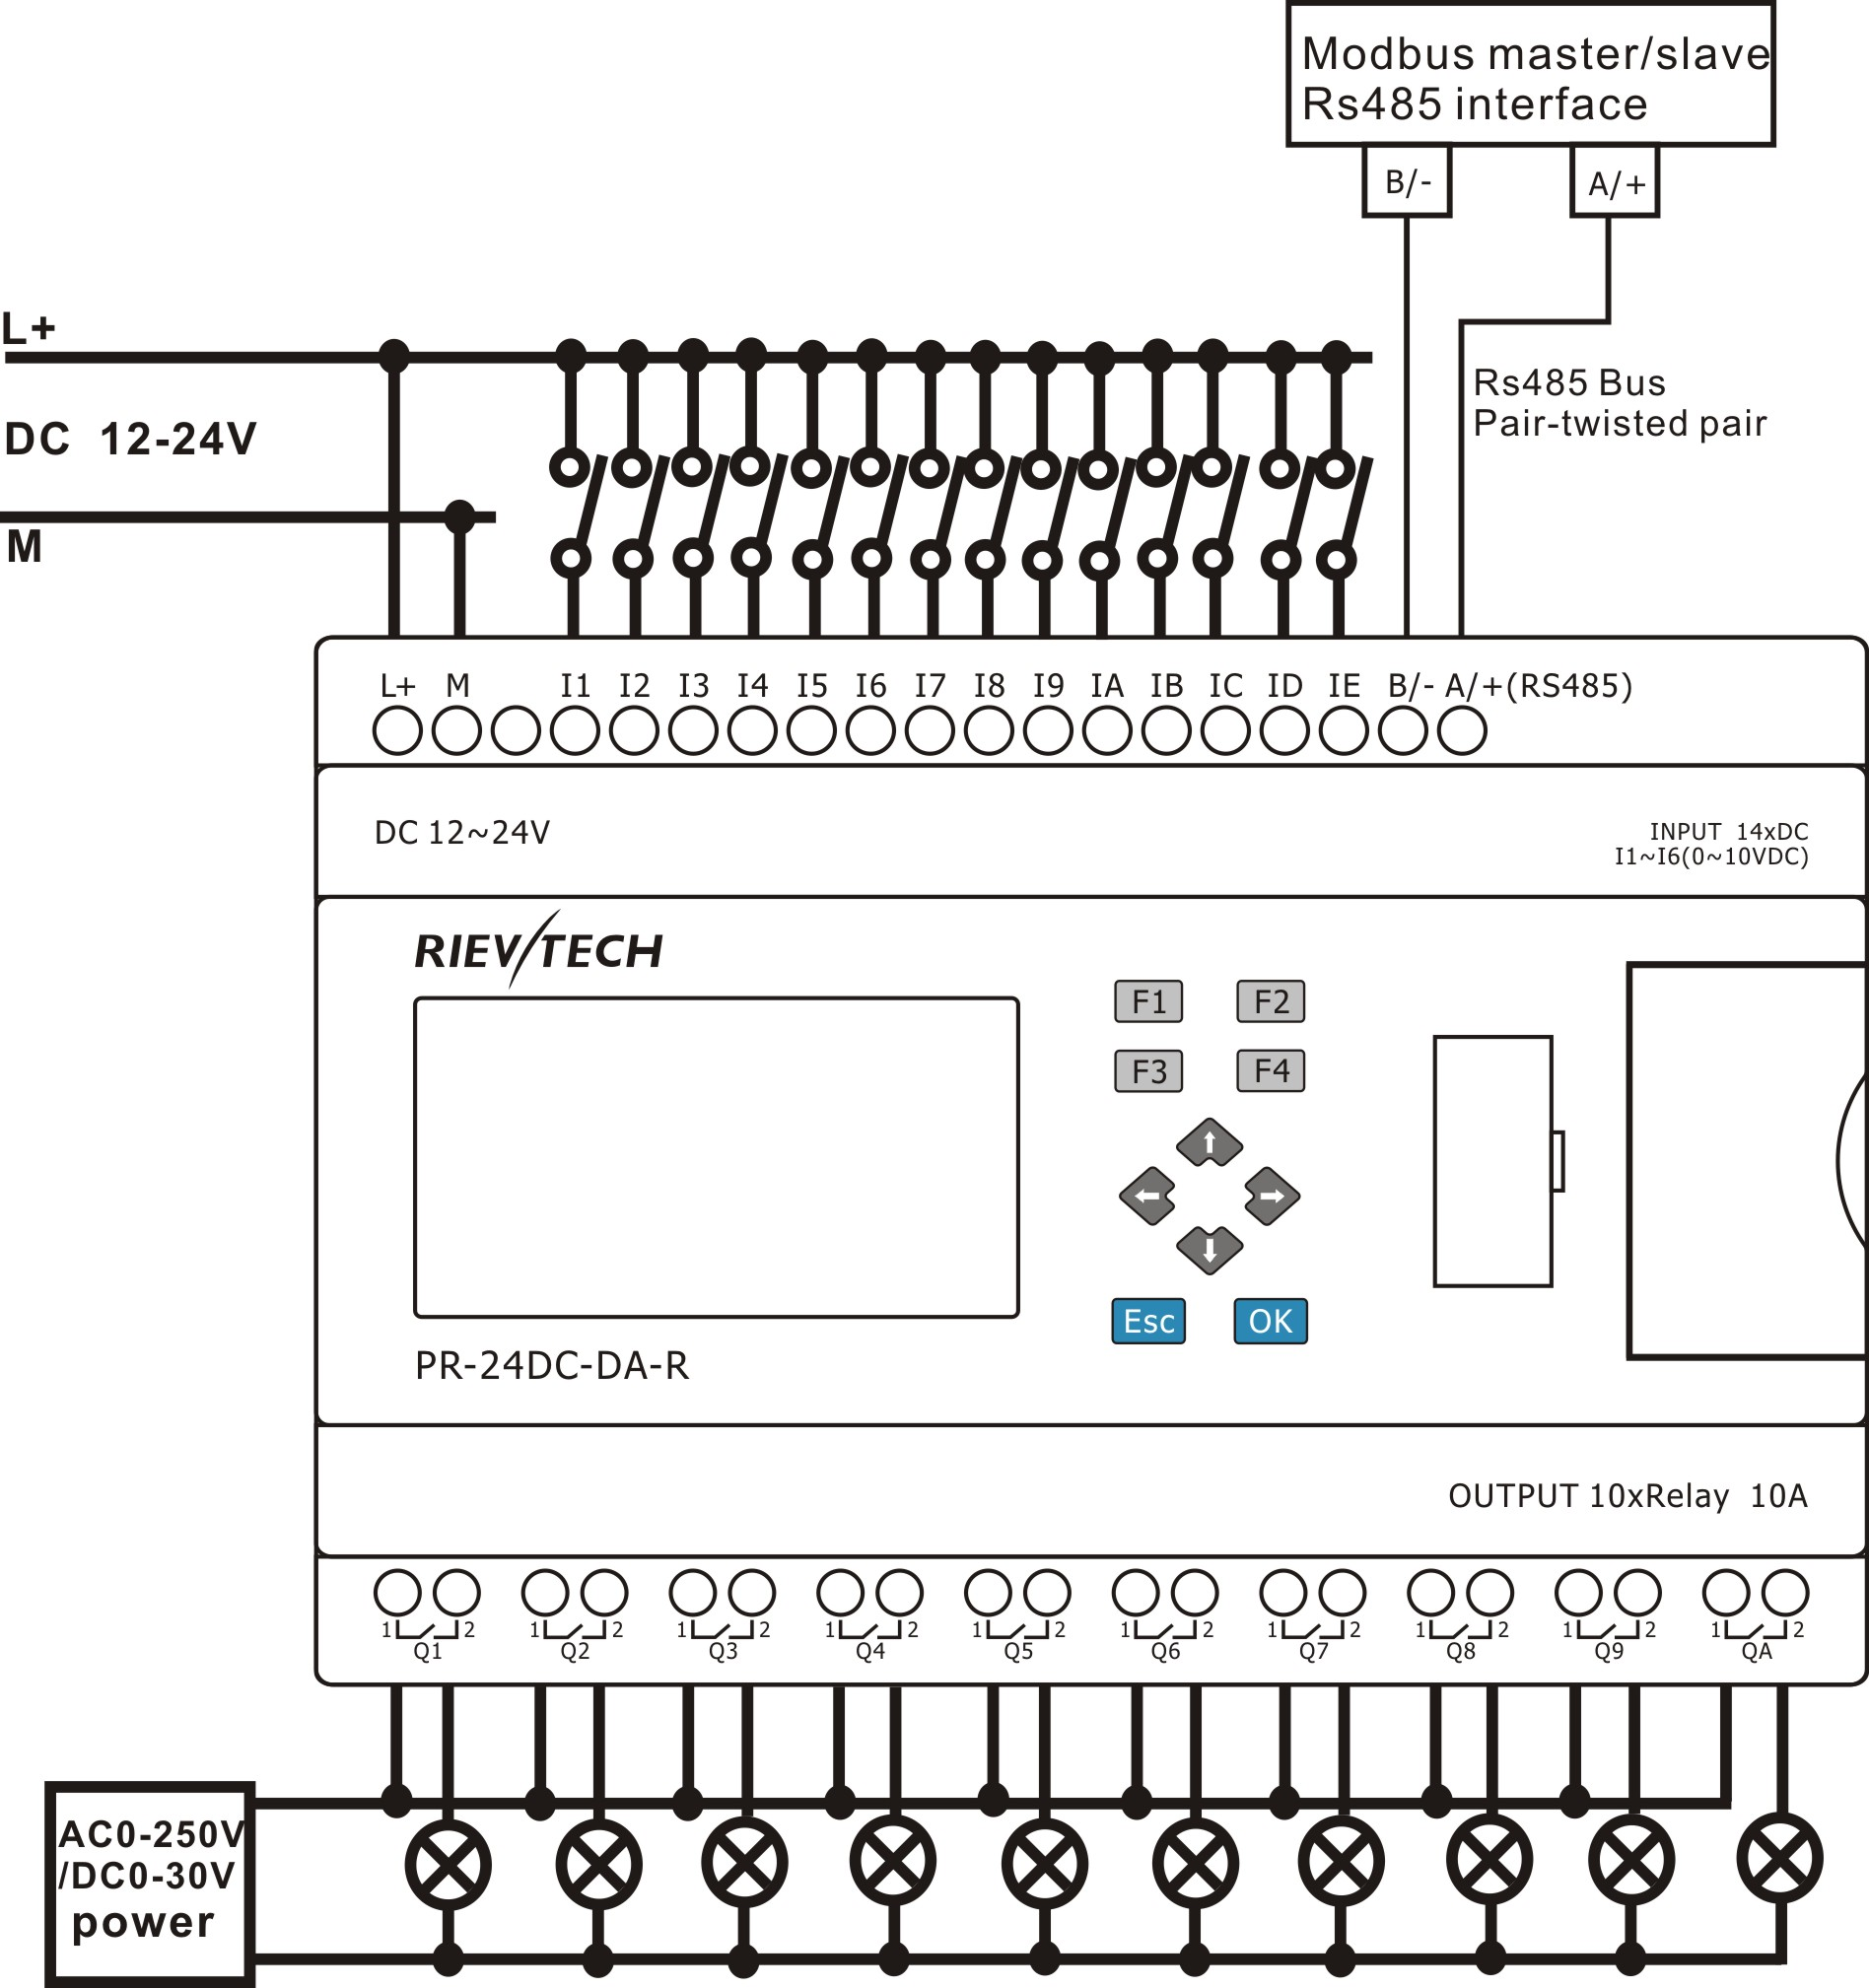 PR_24DC_DA siemens logo analog input wiring diagram circuit and schematics sm 1231 wiring diagram at fashall.co